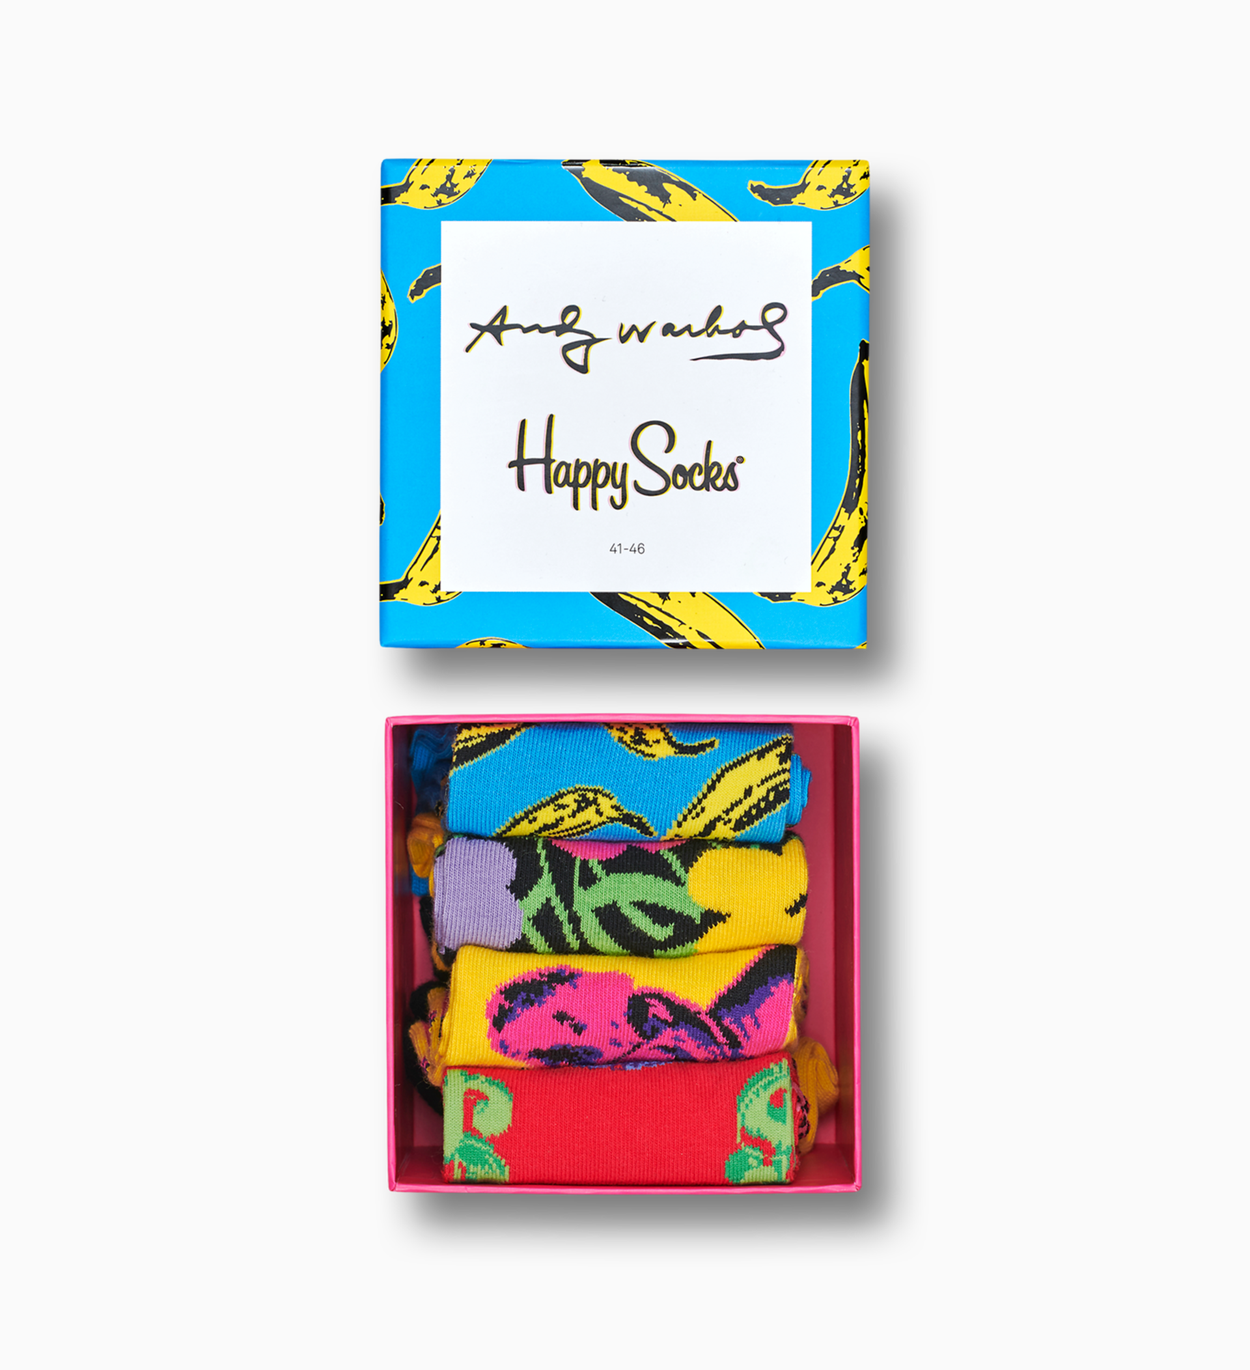 Exclusive Happy Socks x Andy Warhol Socks Box Set